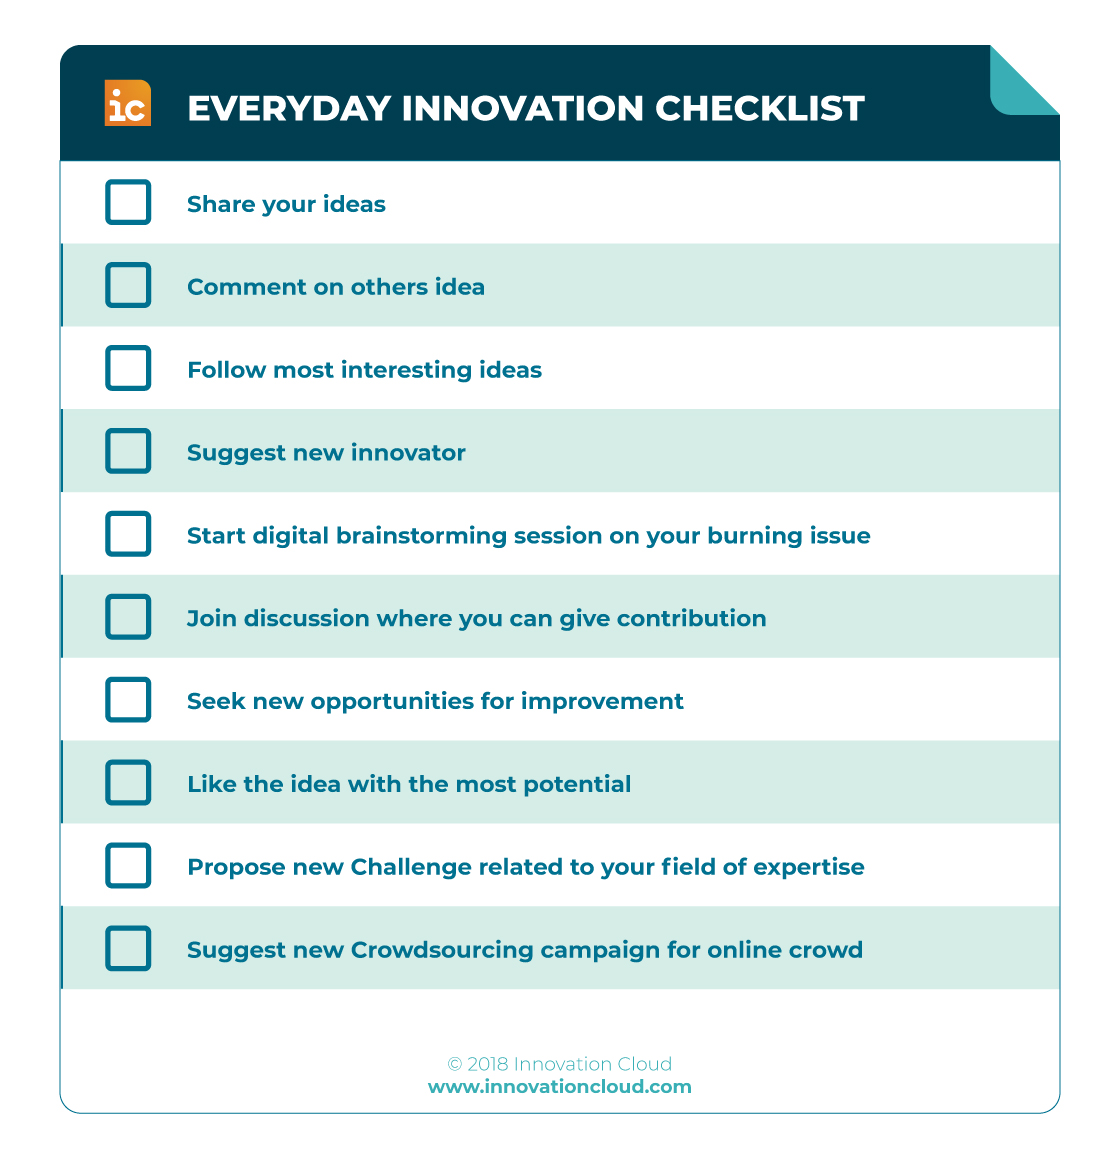 Everyday Innovation Checklist